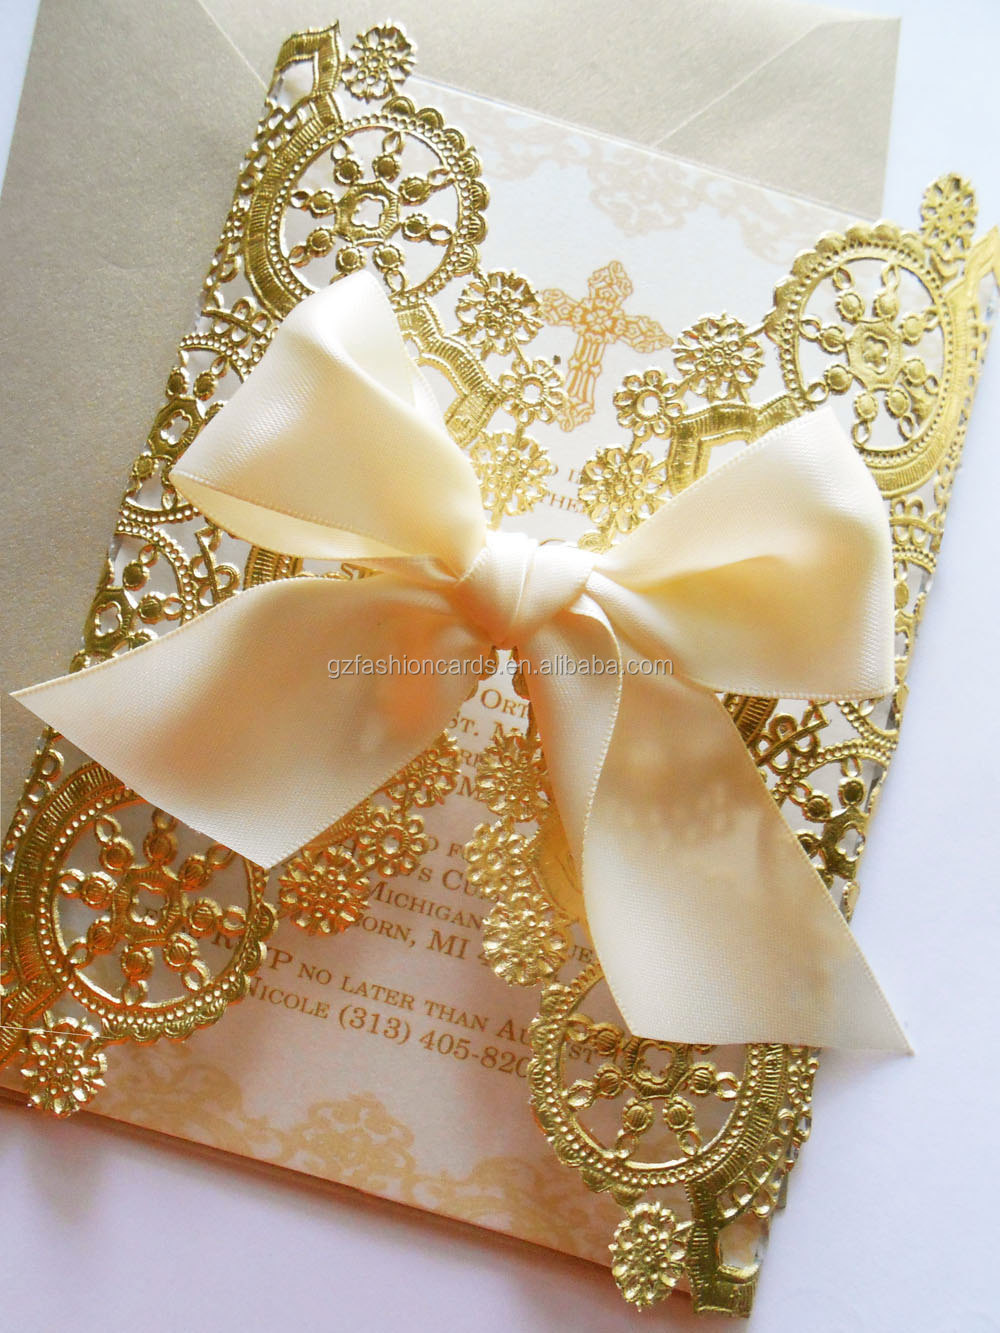 Doily Style Metallic Gold Invitation,Foil Paper Wedding ...